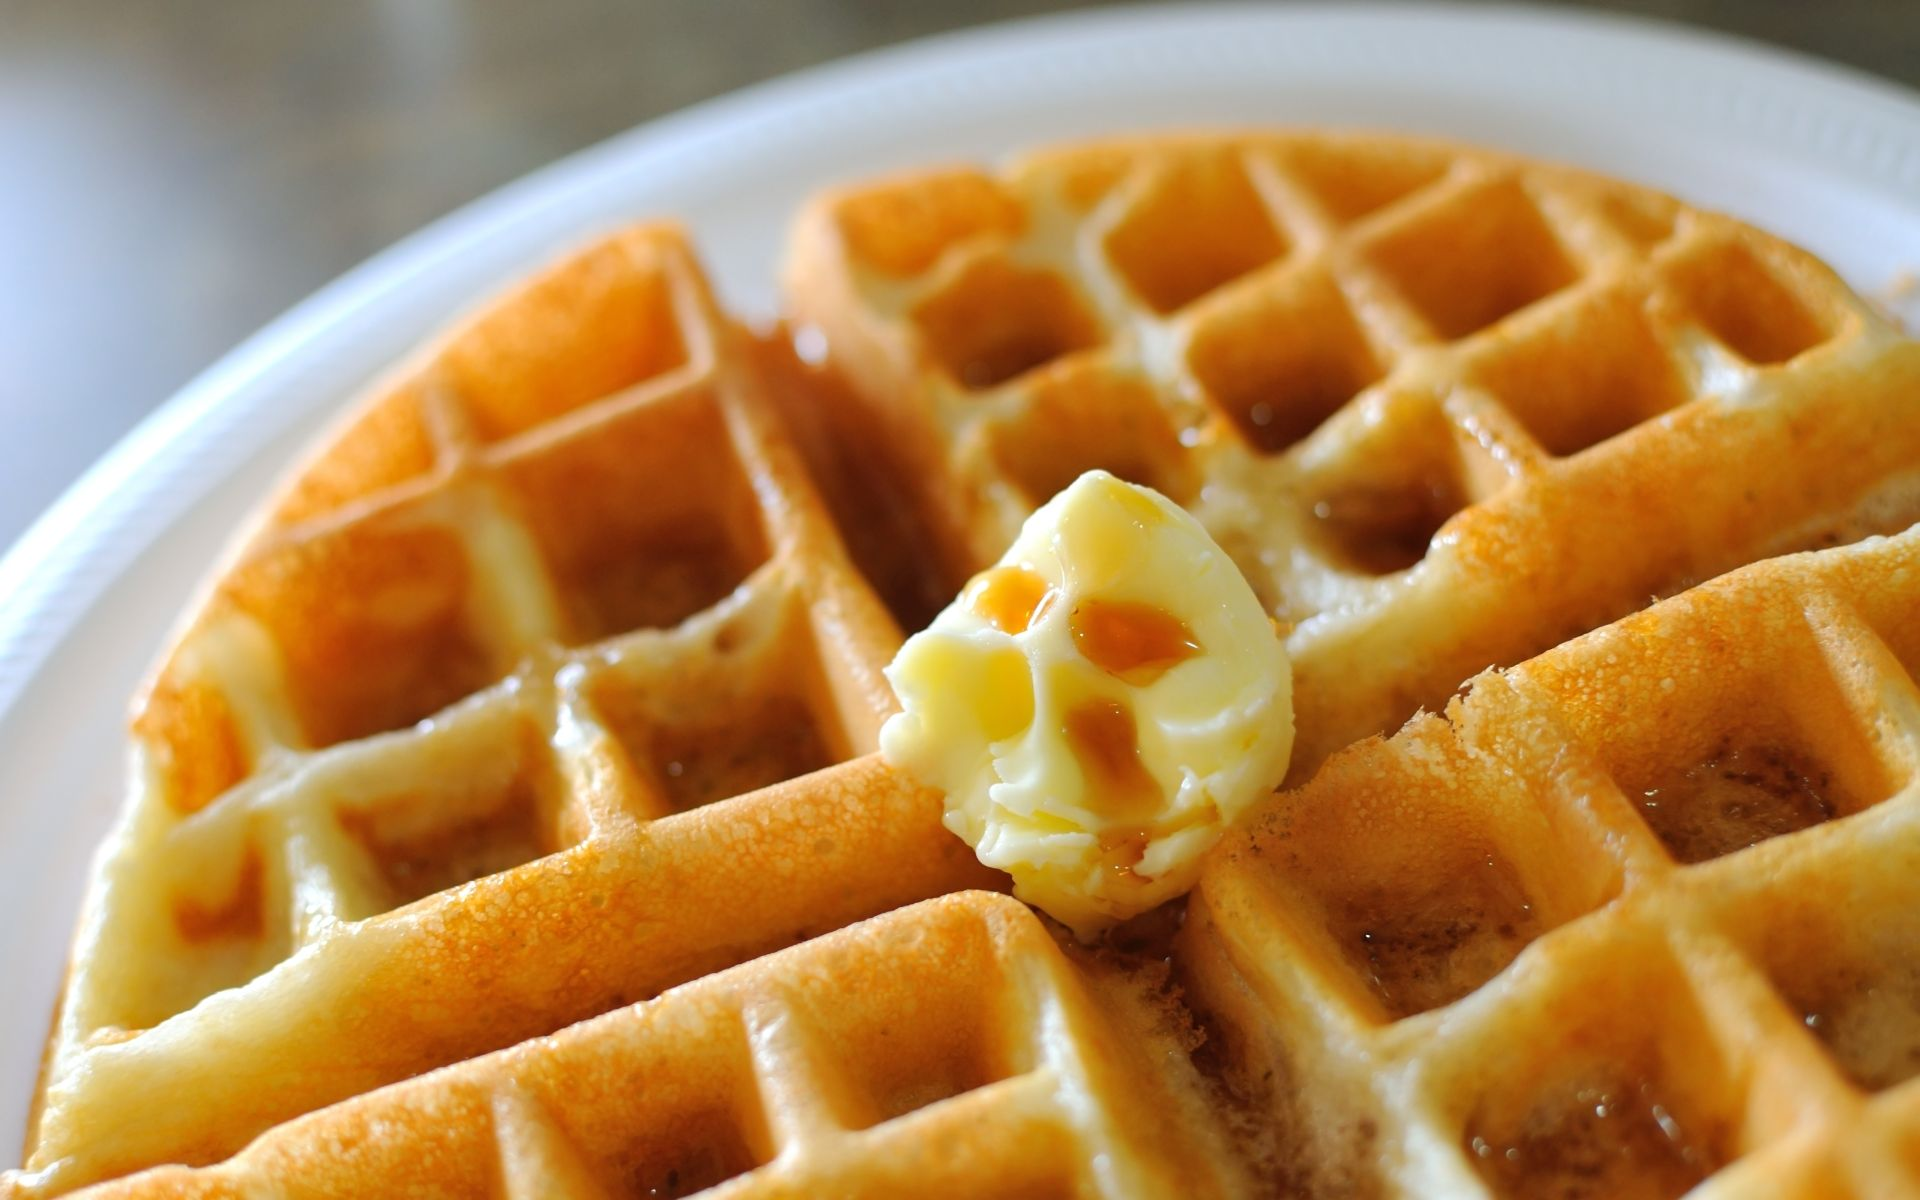 waffle with syrup and butter on a plate